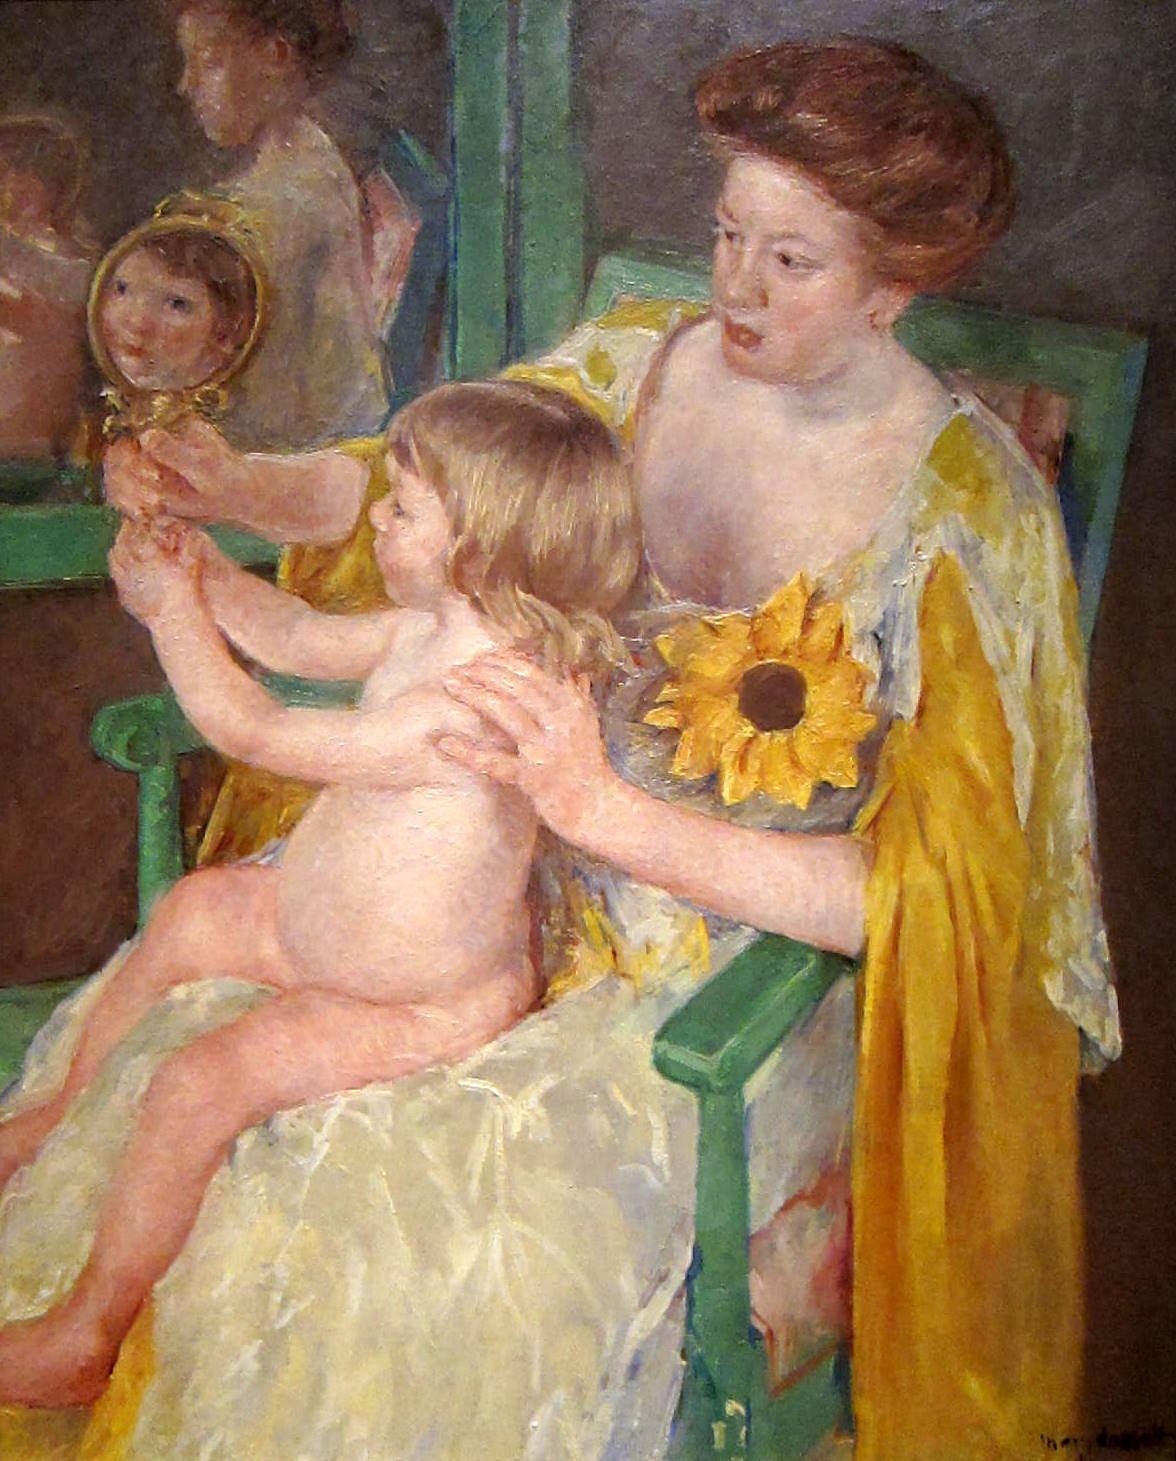 File:Mother and Child - Mary Cassatt.JPG